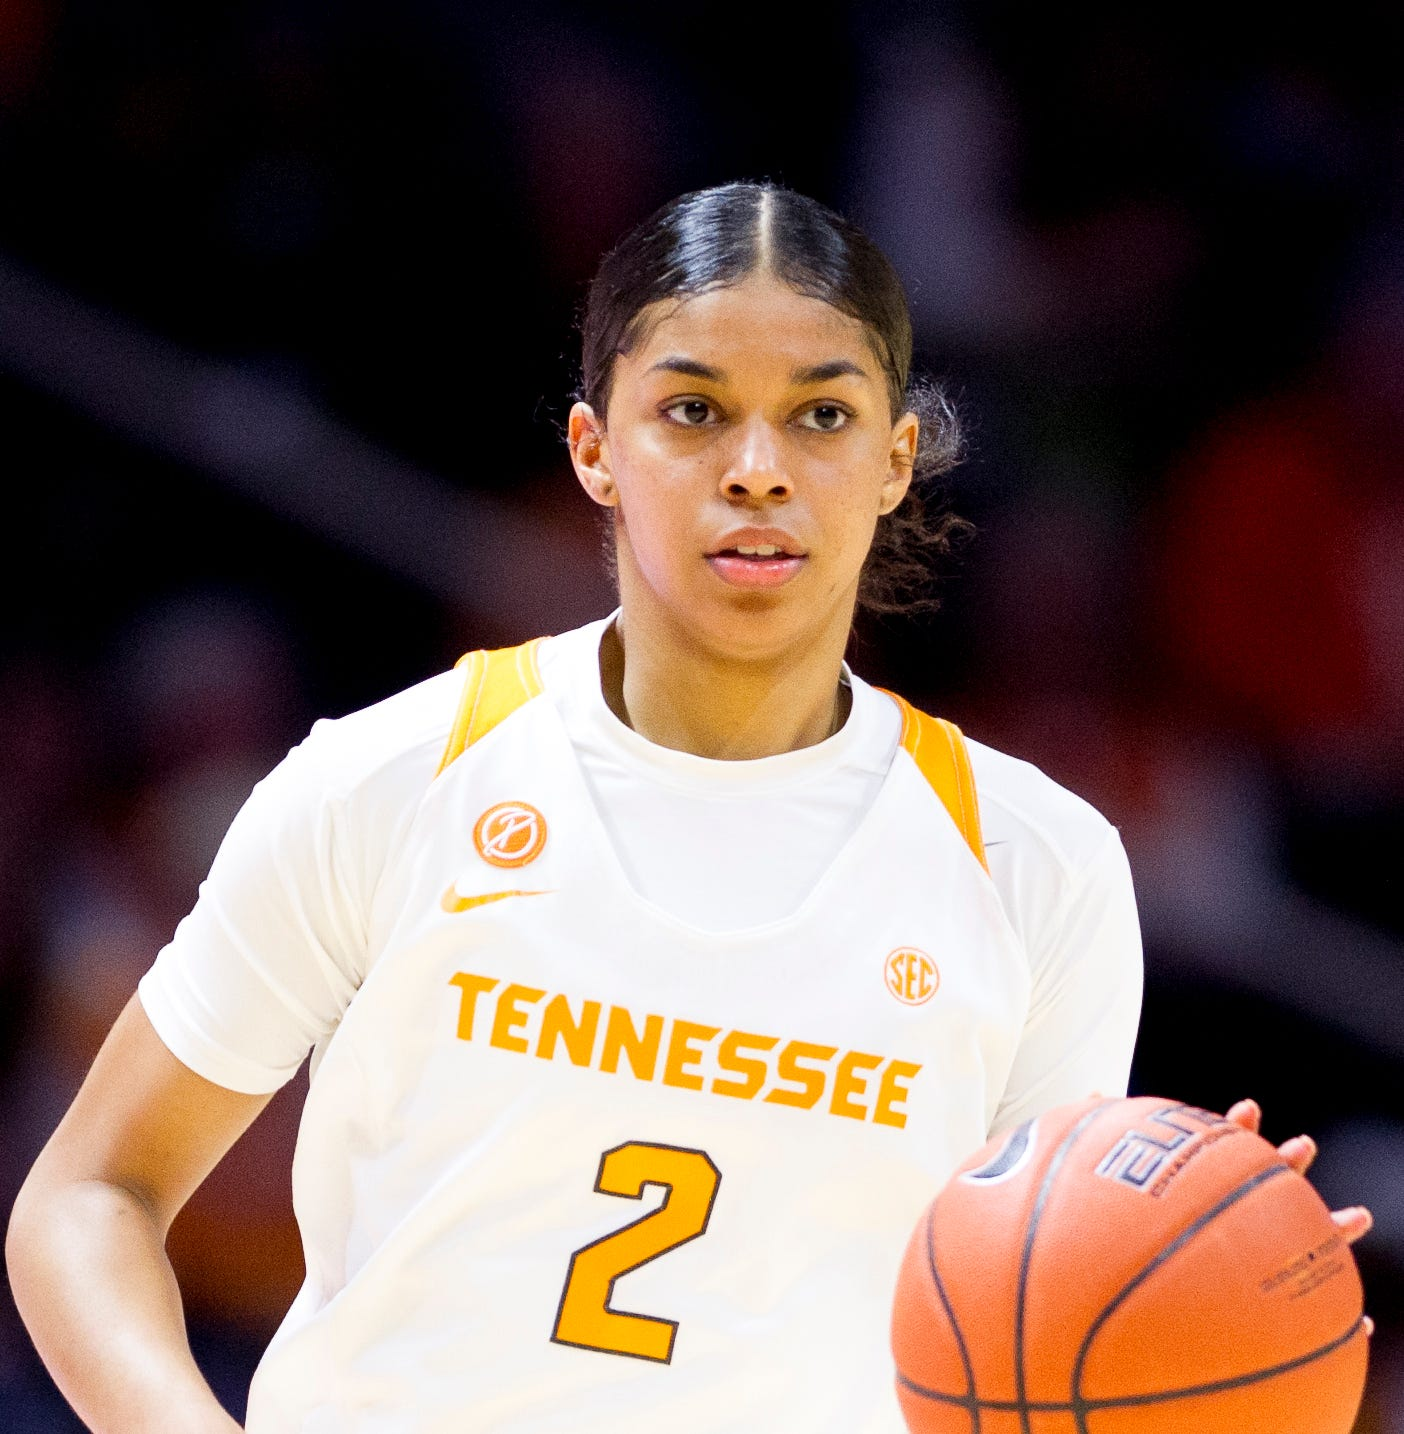 South Salem's Evina Westbrook will transfer from Tennessee